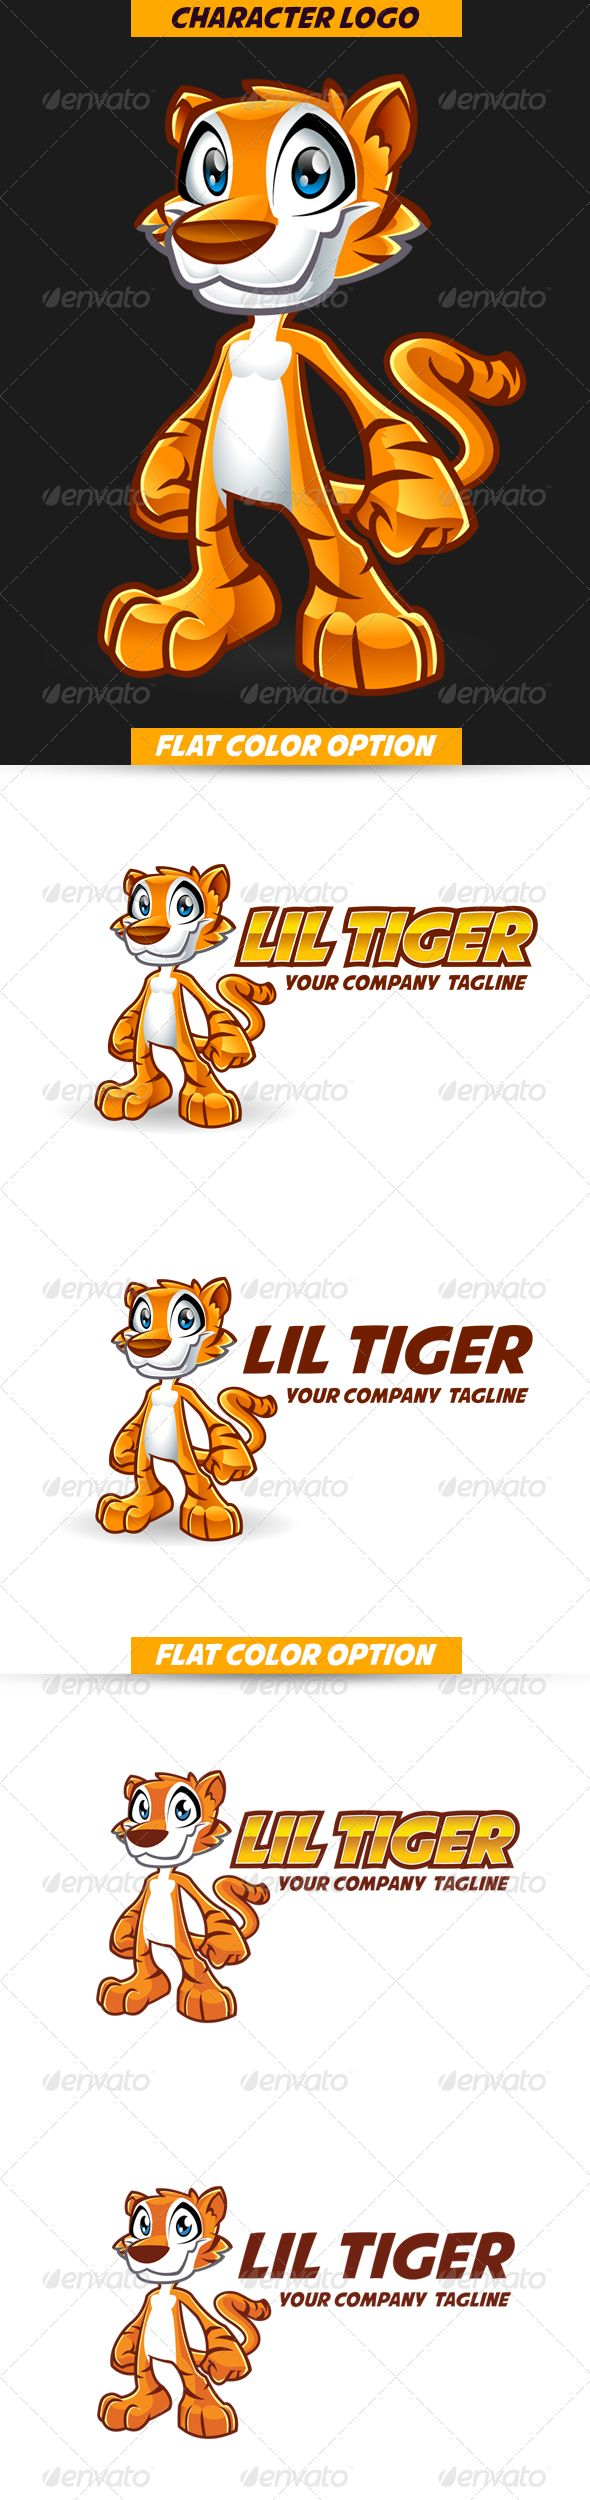 Cartoon Tiger Mascot - Character Logo   #GraphicRiver         awesome and clean Tiger logo mascot template for your playful and powerful company  	 NOTE : you can only use the stylized logotype on AI format but you can open all file with Illustrator 10 Version, CS Version or higher  	 flat color provided for easy printing  	 font link inside the readme file     Created: 28September13 GraphicsFilesIncluded: VectorEPS #AIIllustrator Layered: Yes